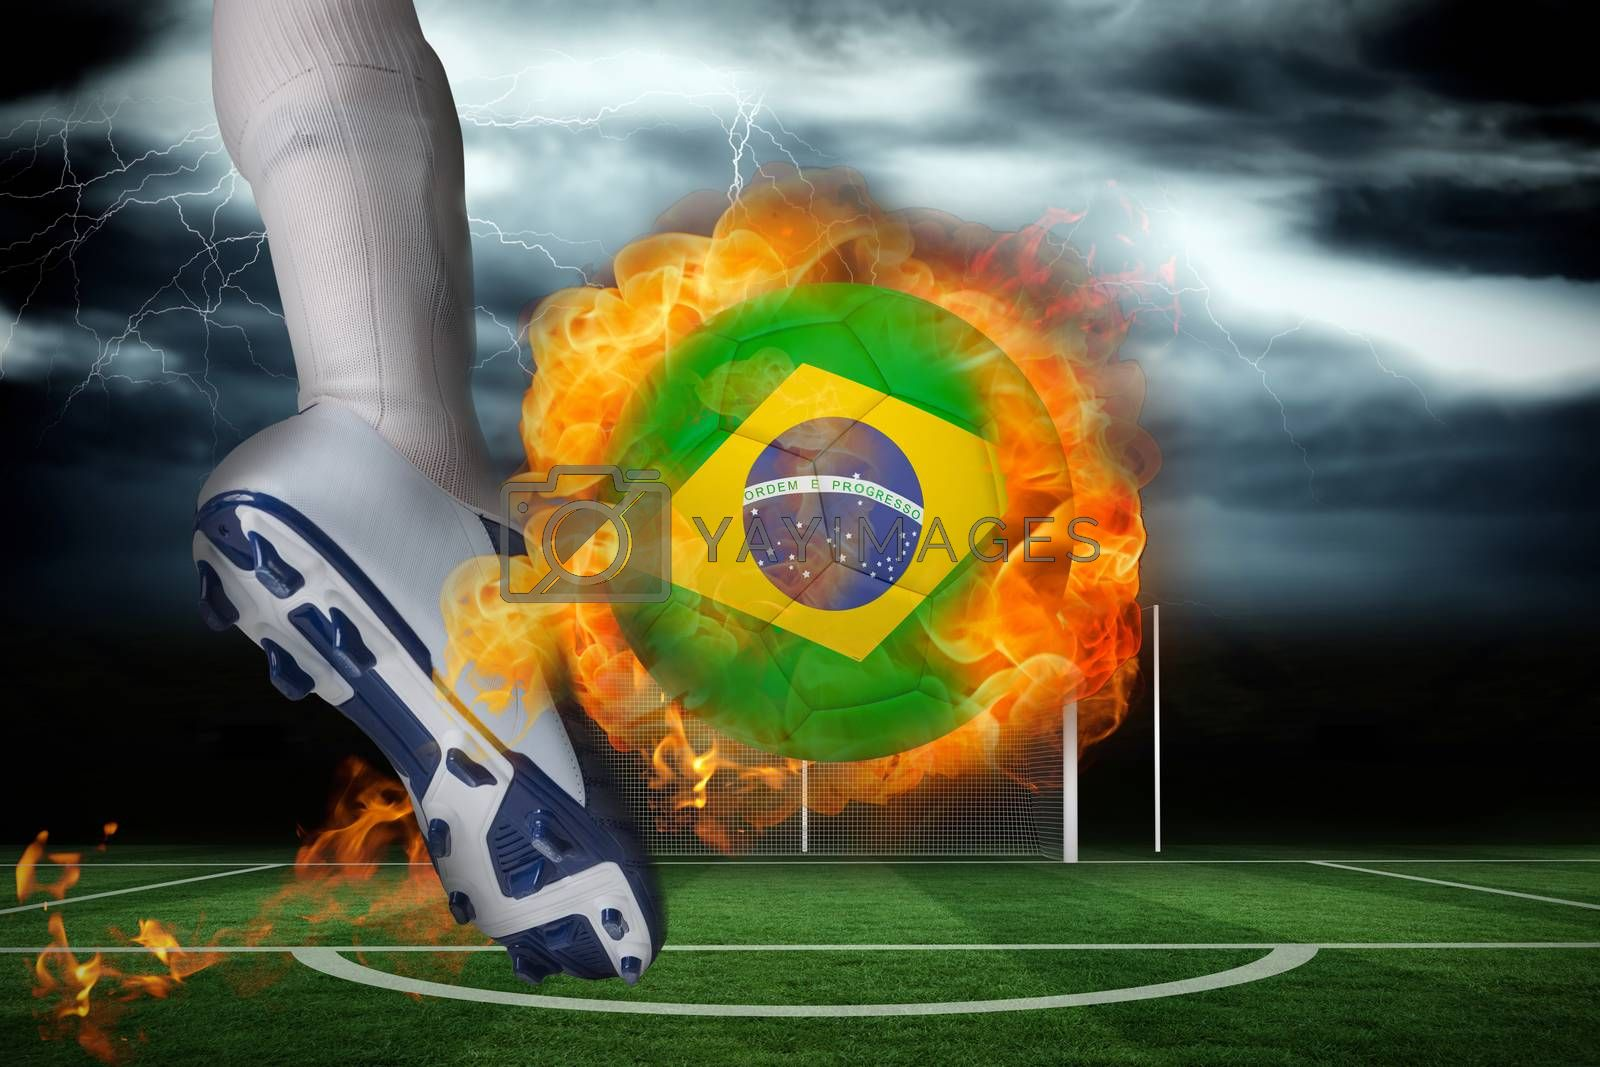 Football player kicking flaming brasil flag ball by Wavebreakmedia